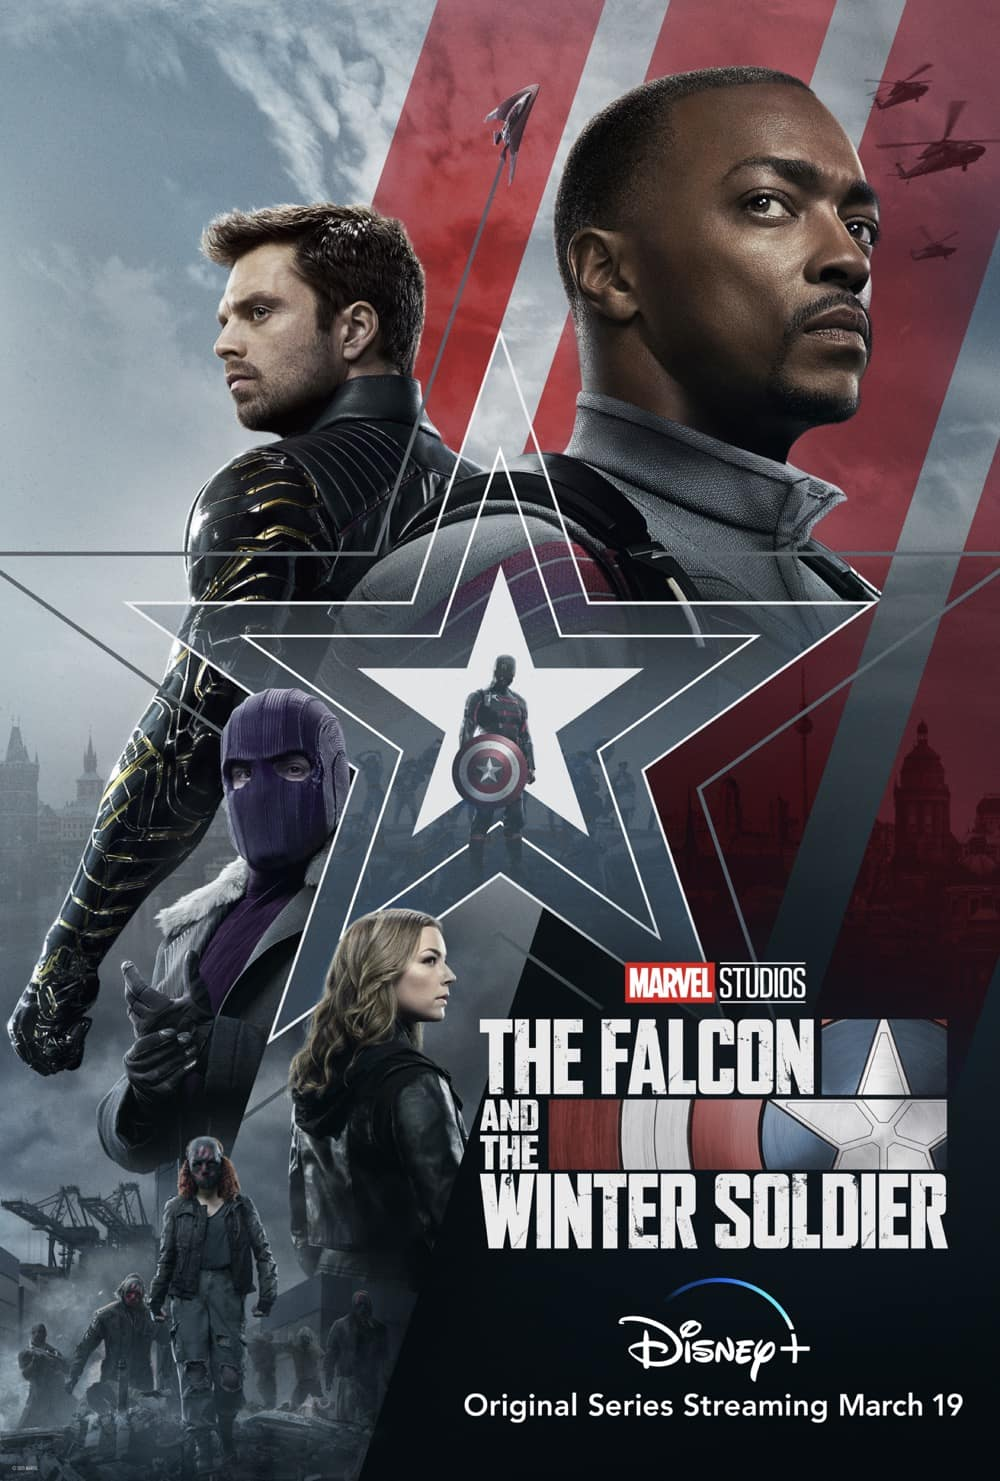 The Falcon And The Winter Soldier Poster Key Art